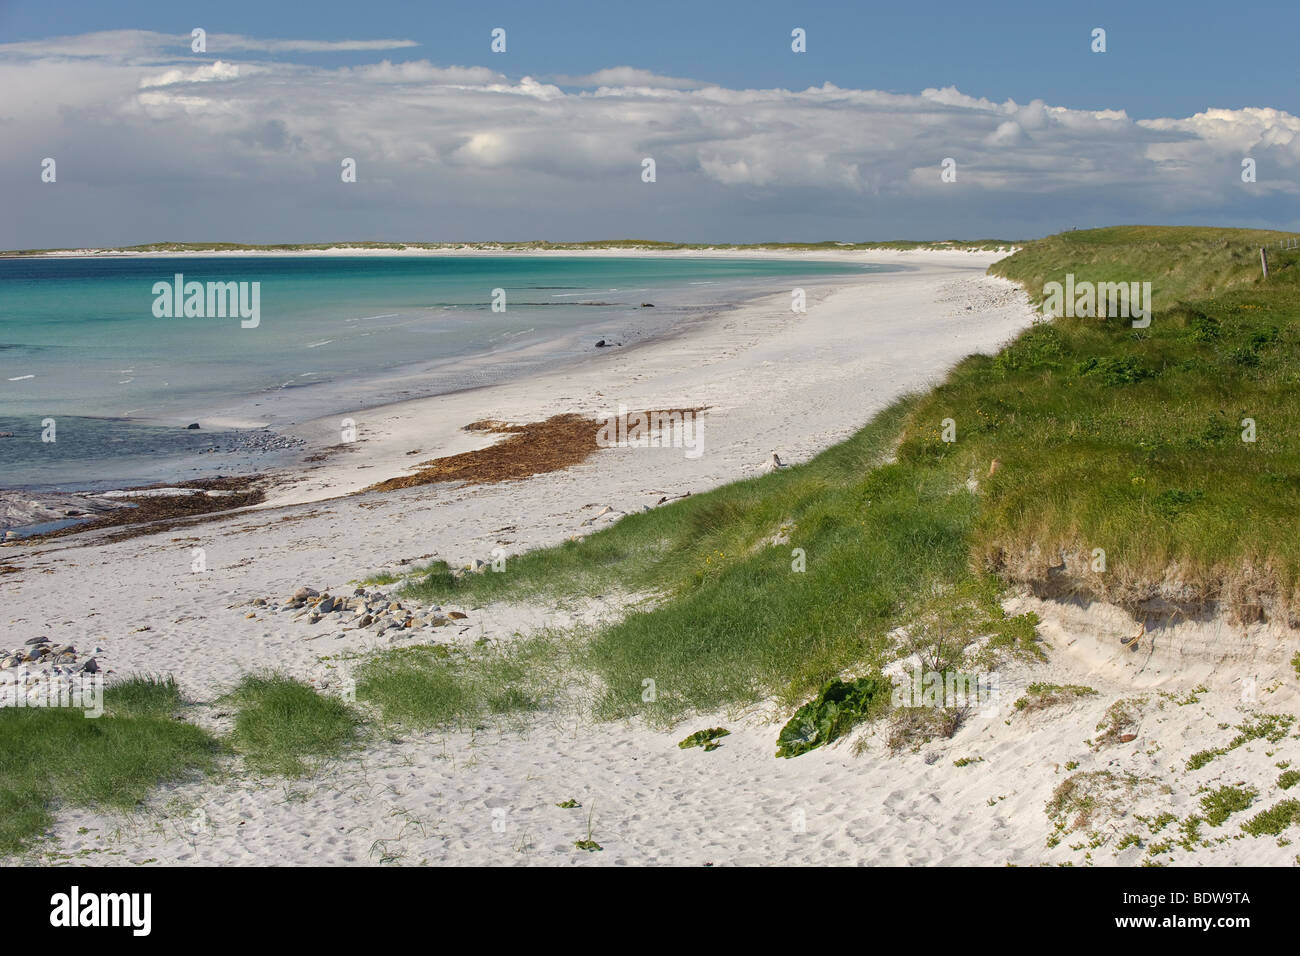 Coral sand beach at Kildonan (Cill Donnain) on isle of South Uist. Western Isles, Scotland. - Stock Image